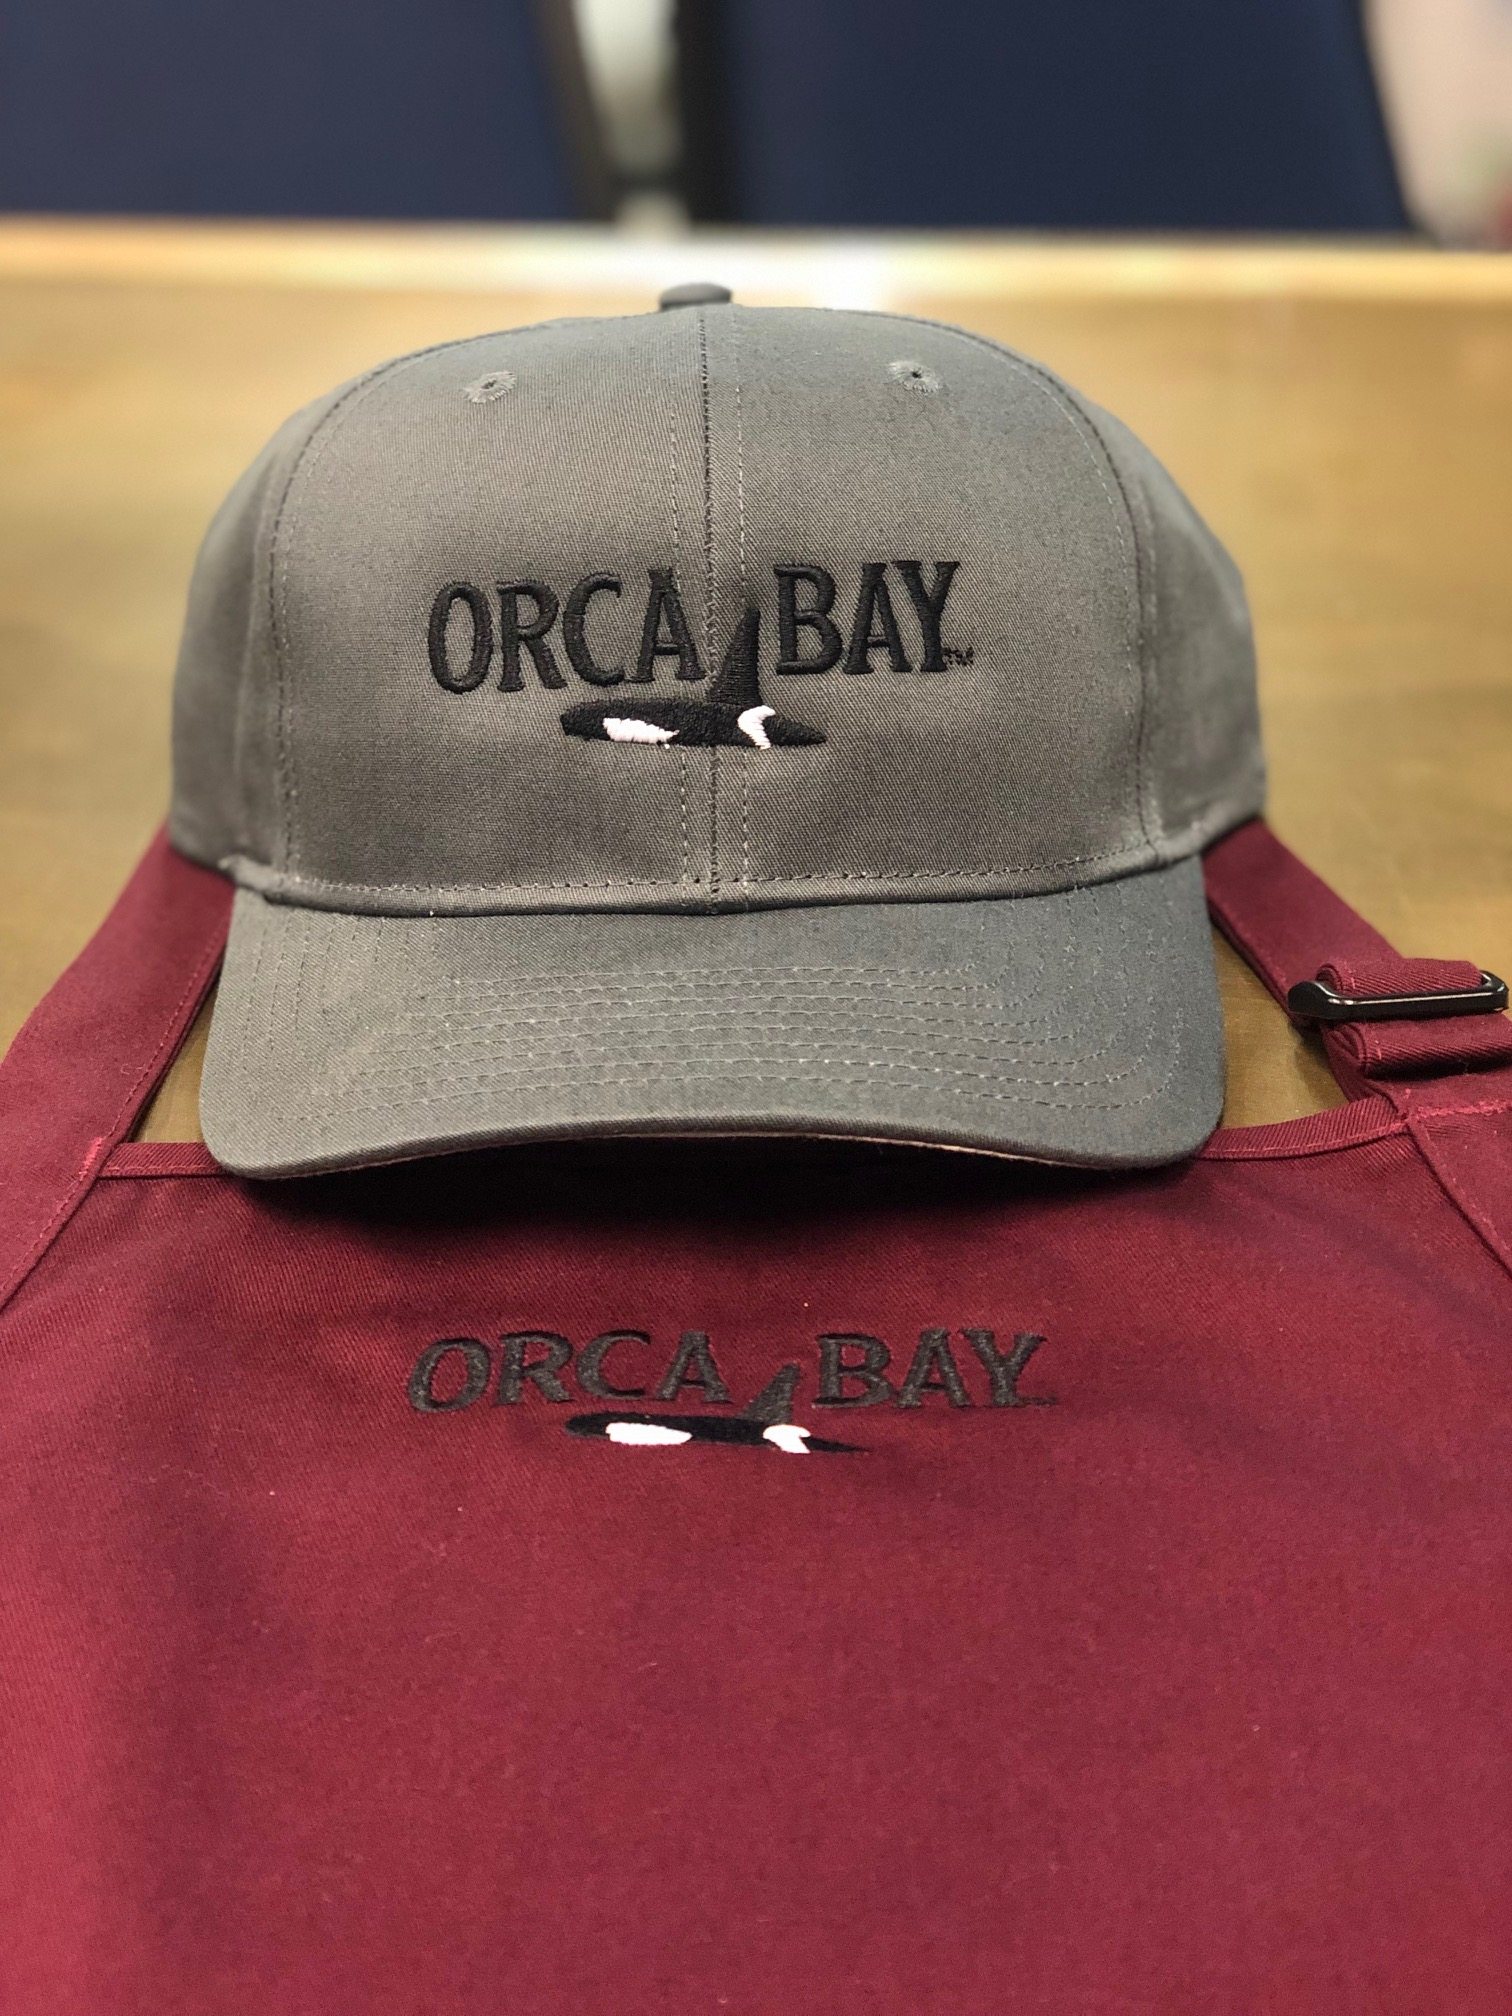 logounltd_laser_etching_embroidery_screen_printing_apparel_uniform_custom_tshirts_kirkland_bellevue_seattle_redmond_woodinville_branded_merchandise_promotional_products_logo_unltd_hats_orcabay_seafoods (1).jpg